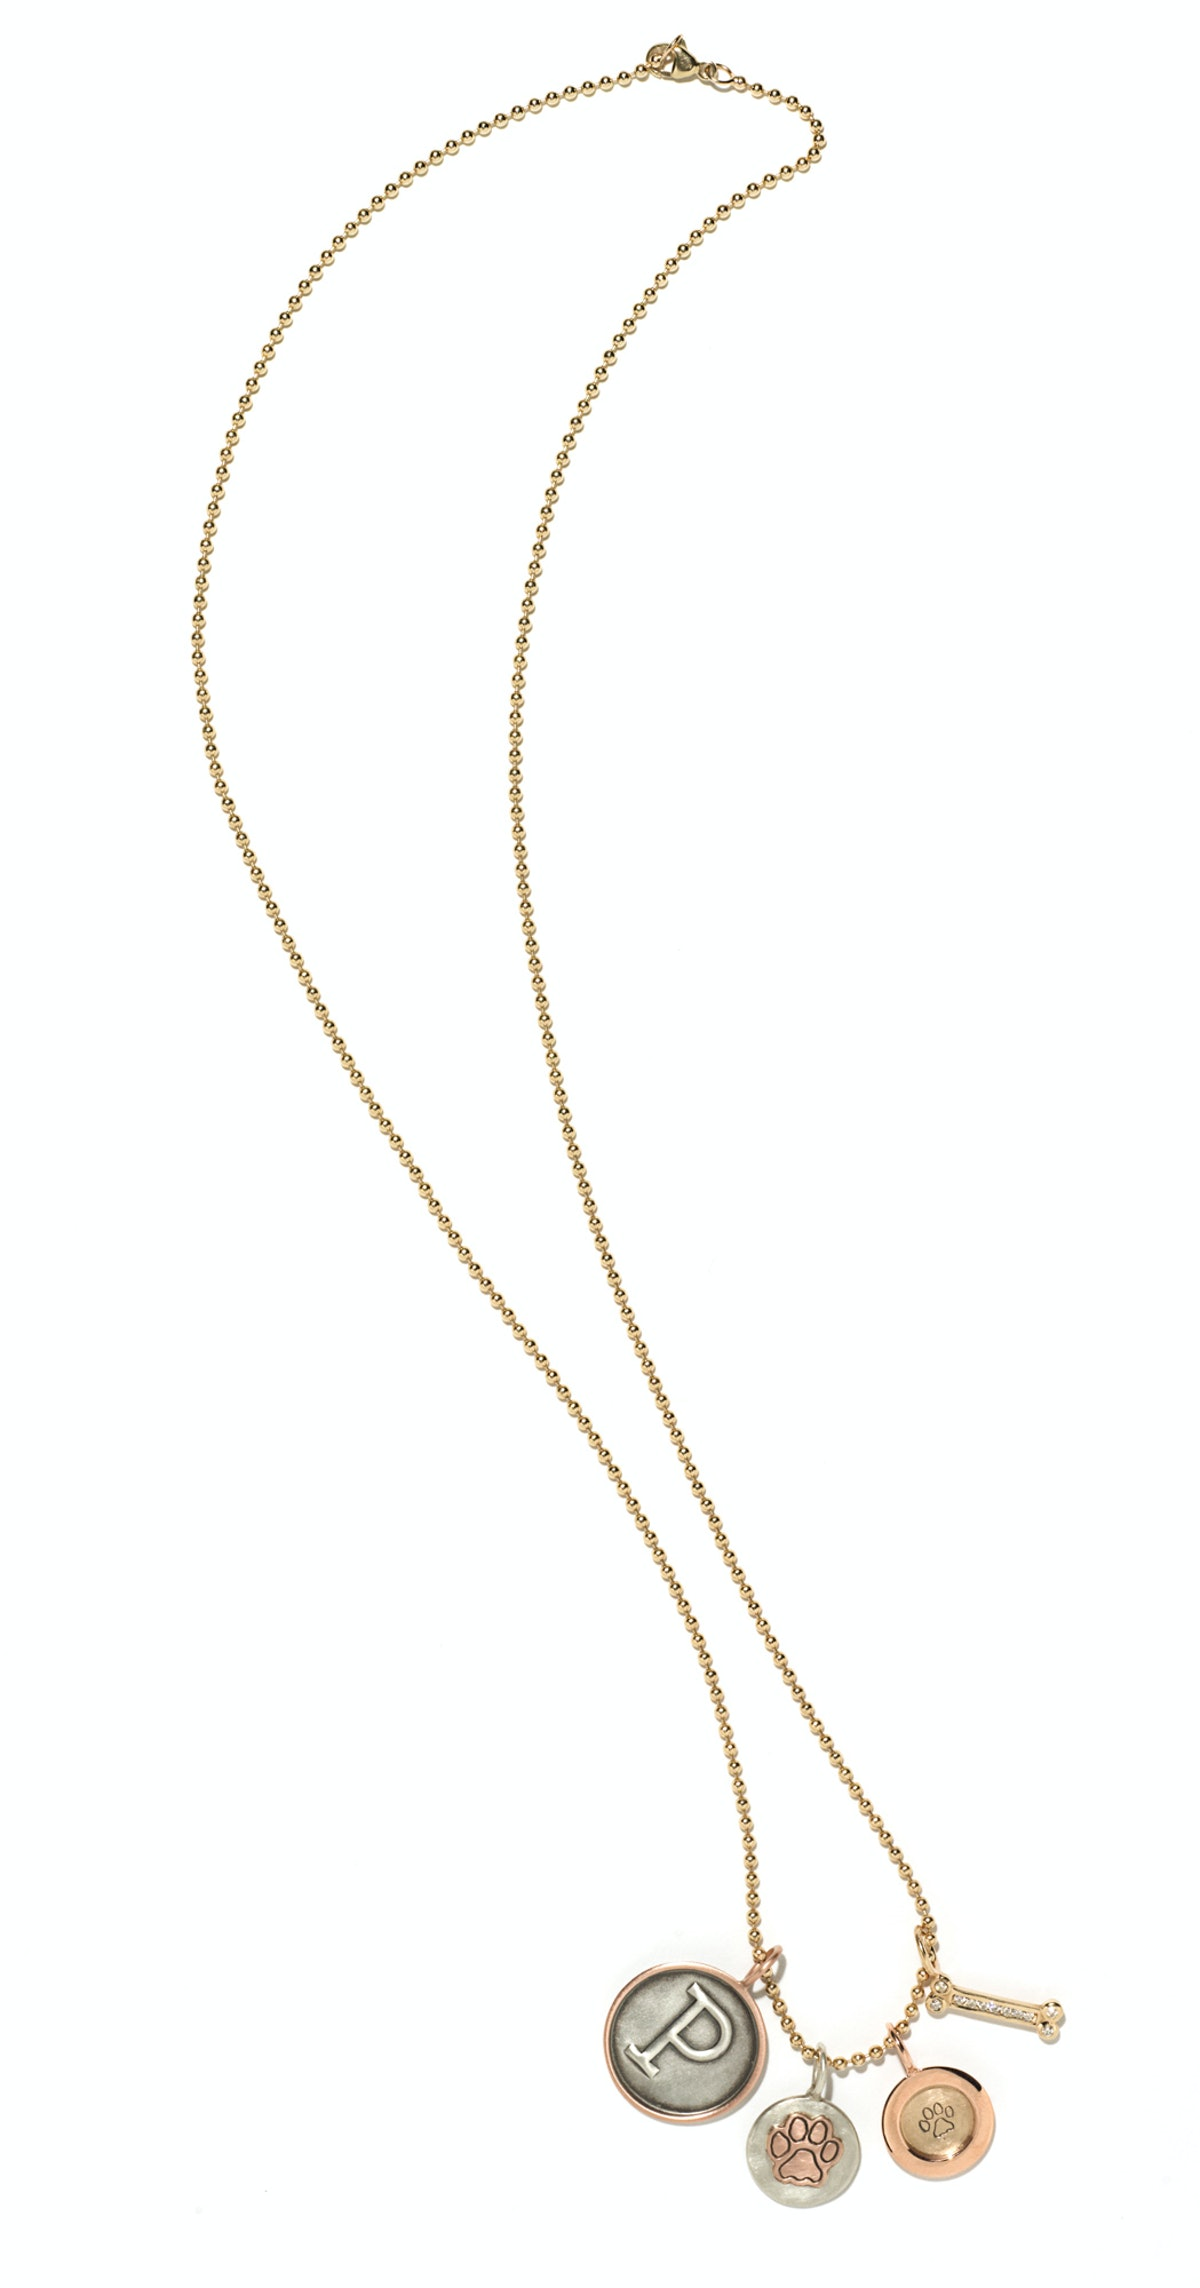 Heather Moore Jewelry gold, sterling silver, and diamond charm necklace, $5,495, heathermoorejewelry...